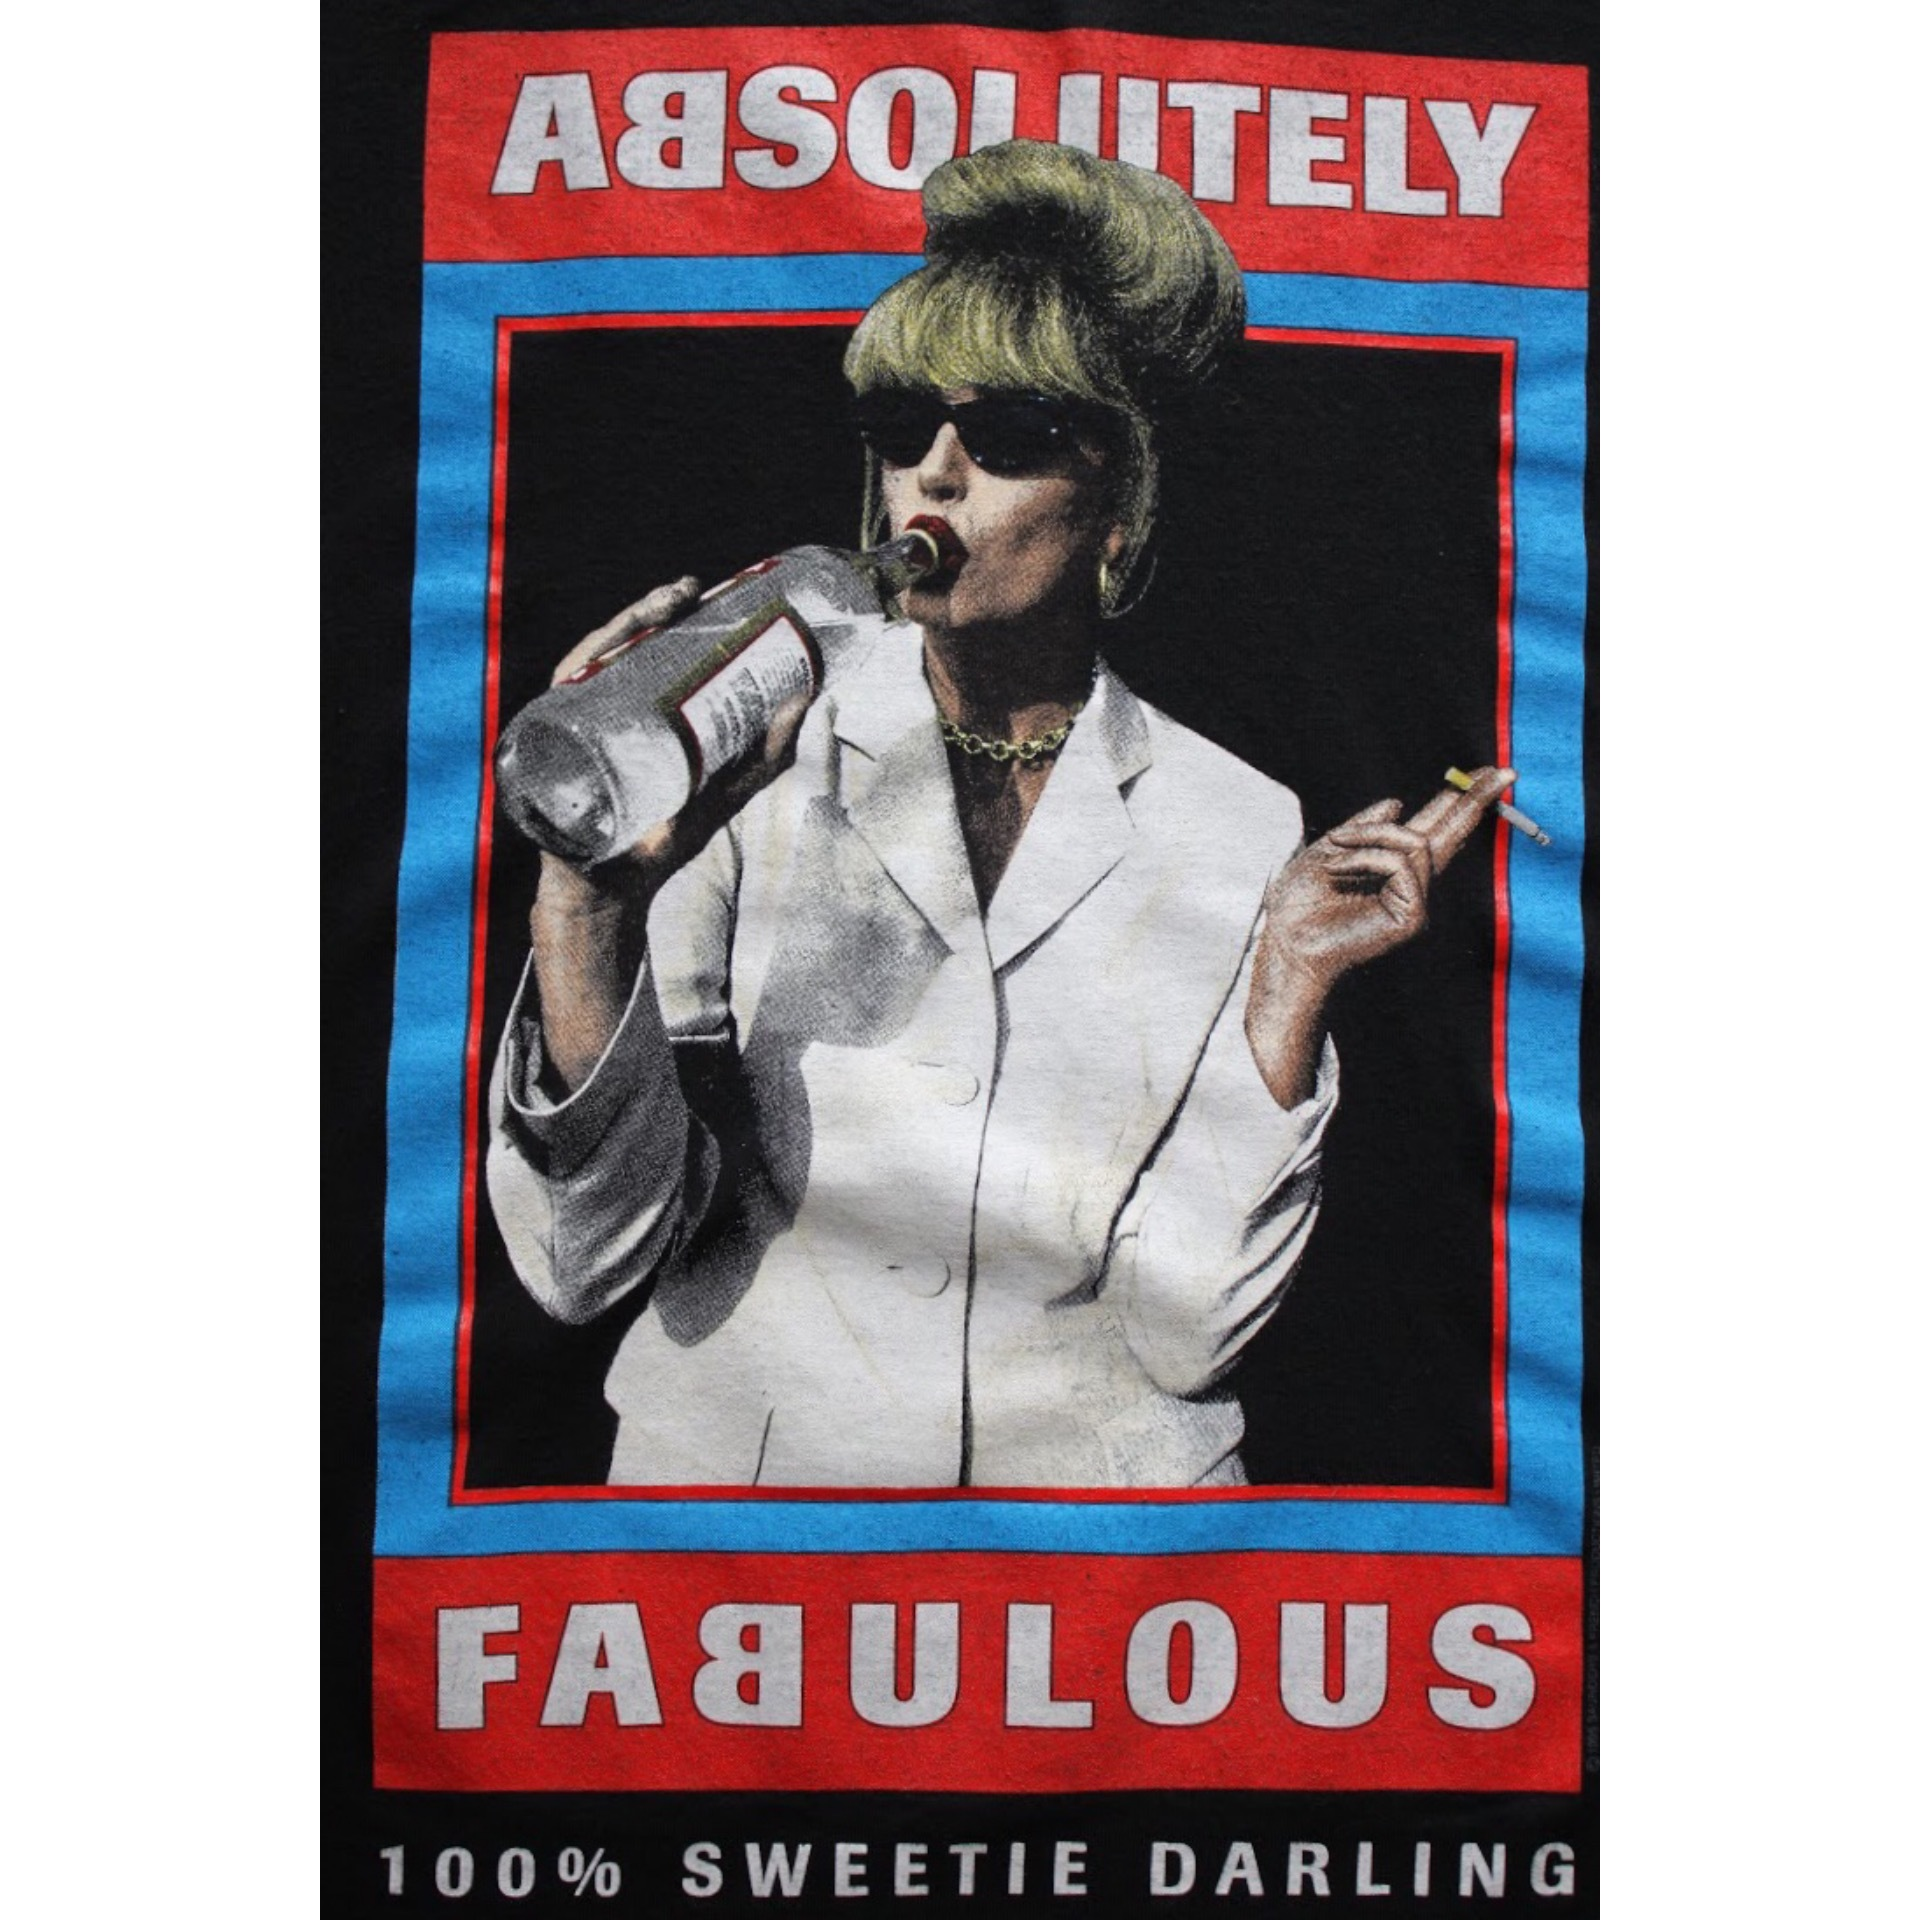 Vintage Absolutely Fabulous t shirt